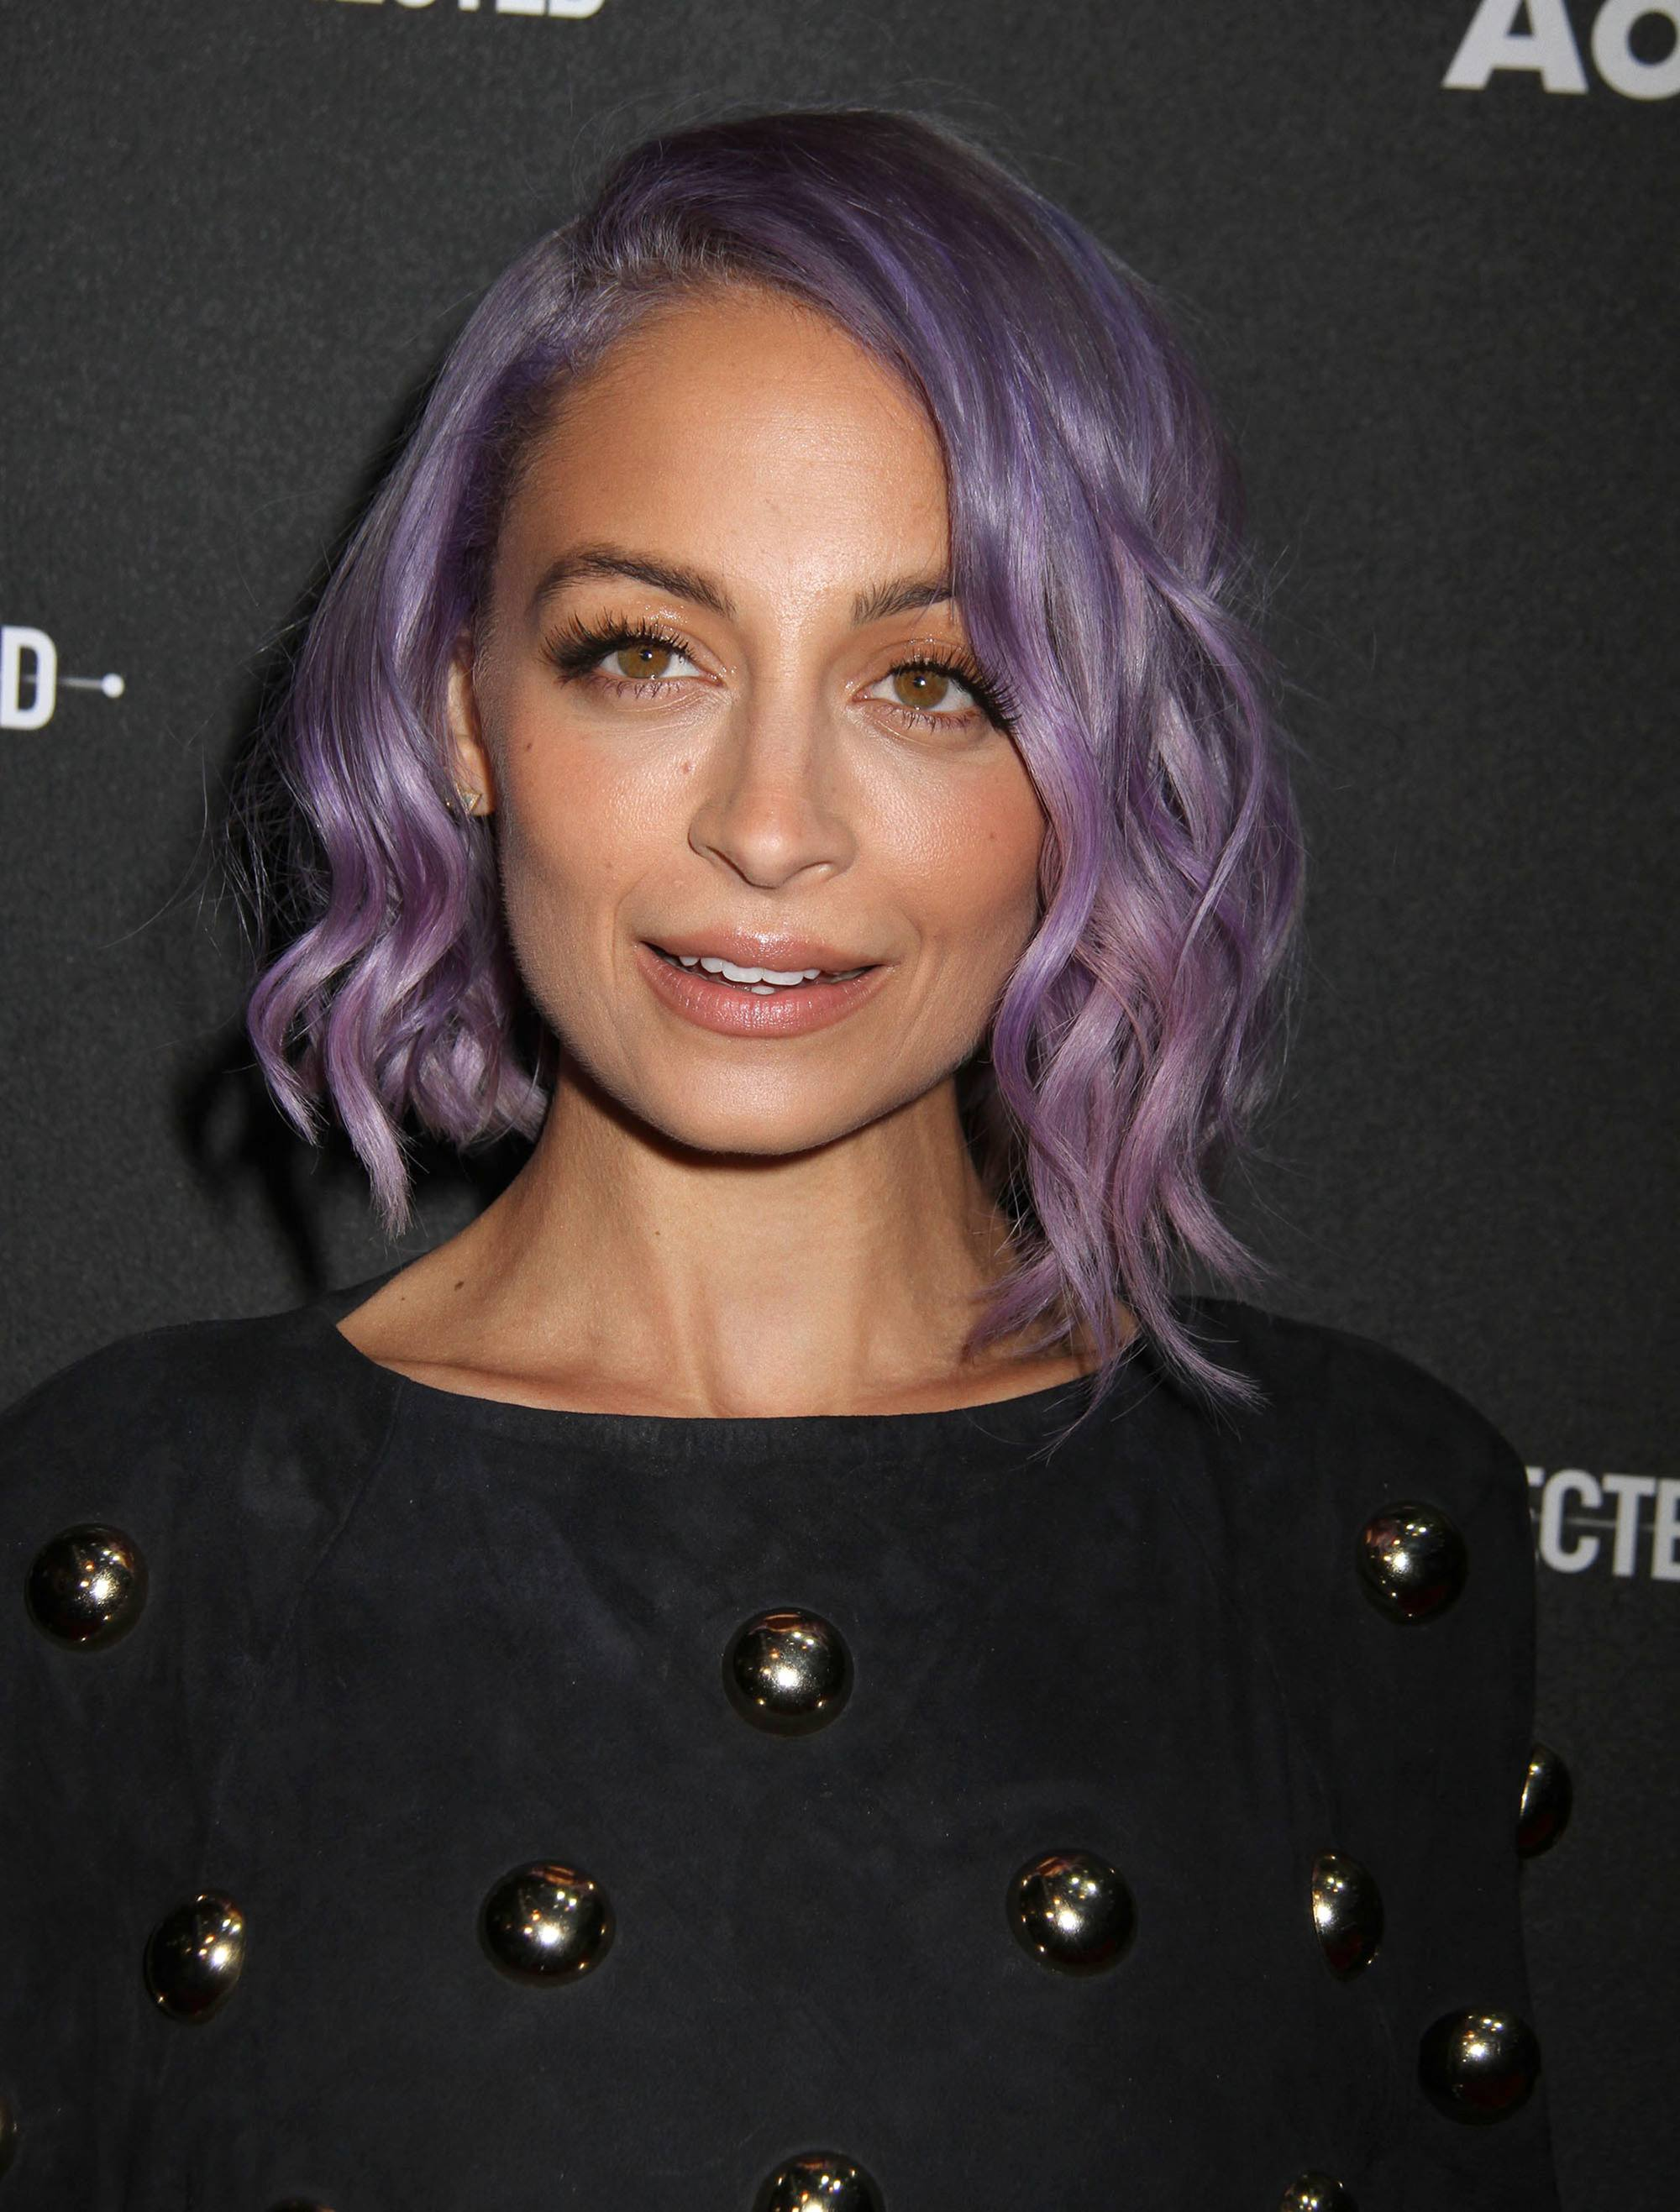 Richie nicole lilac hair new photo